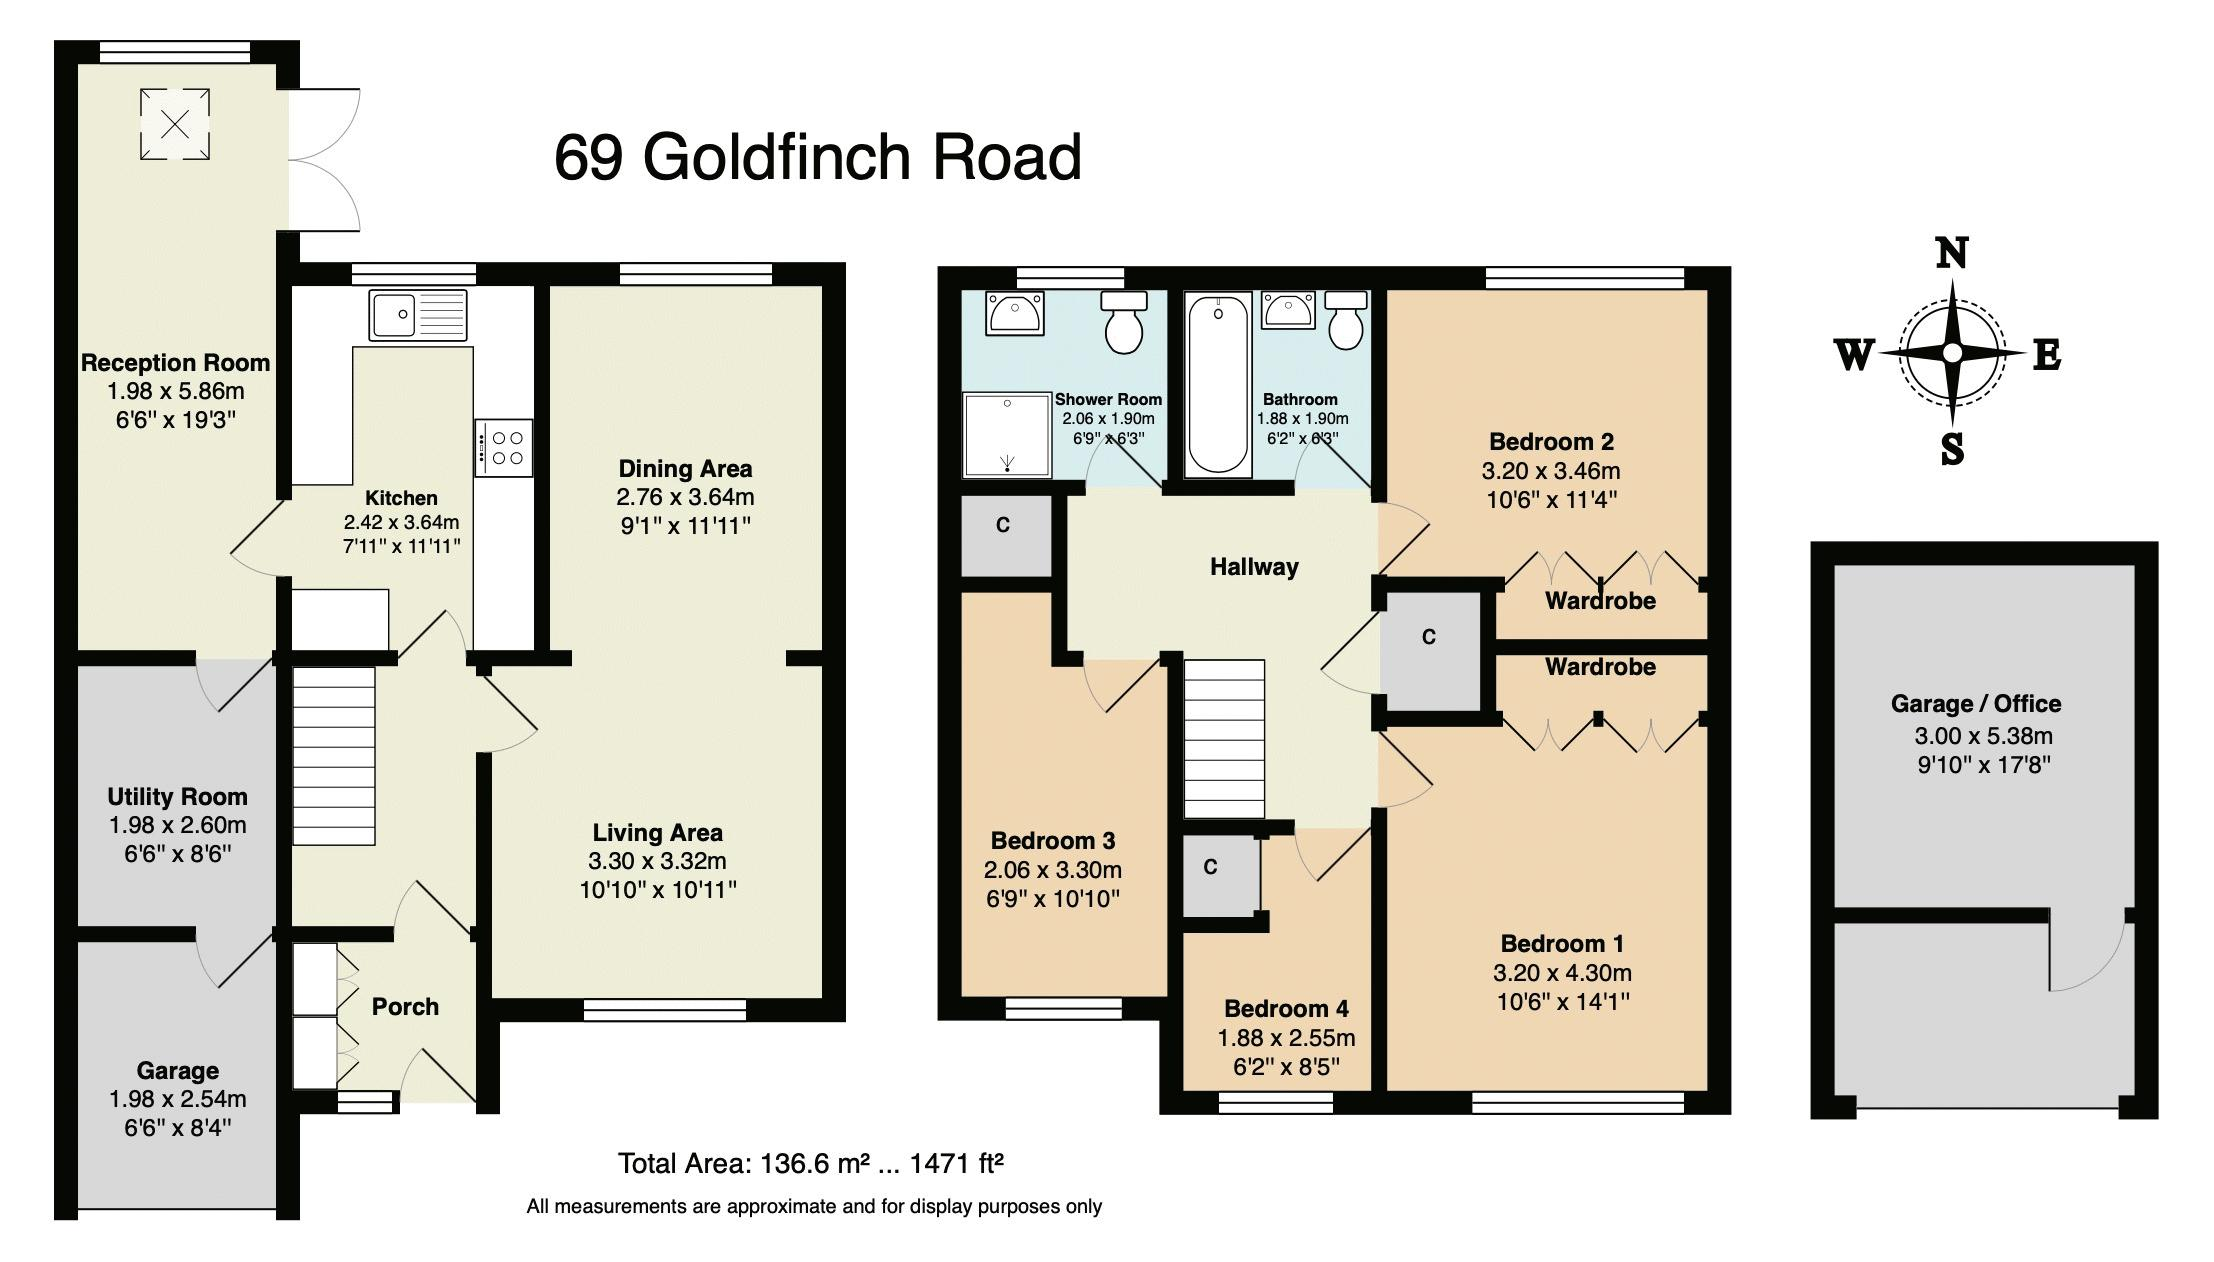 Goldfinch Road